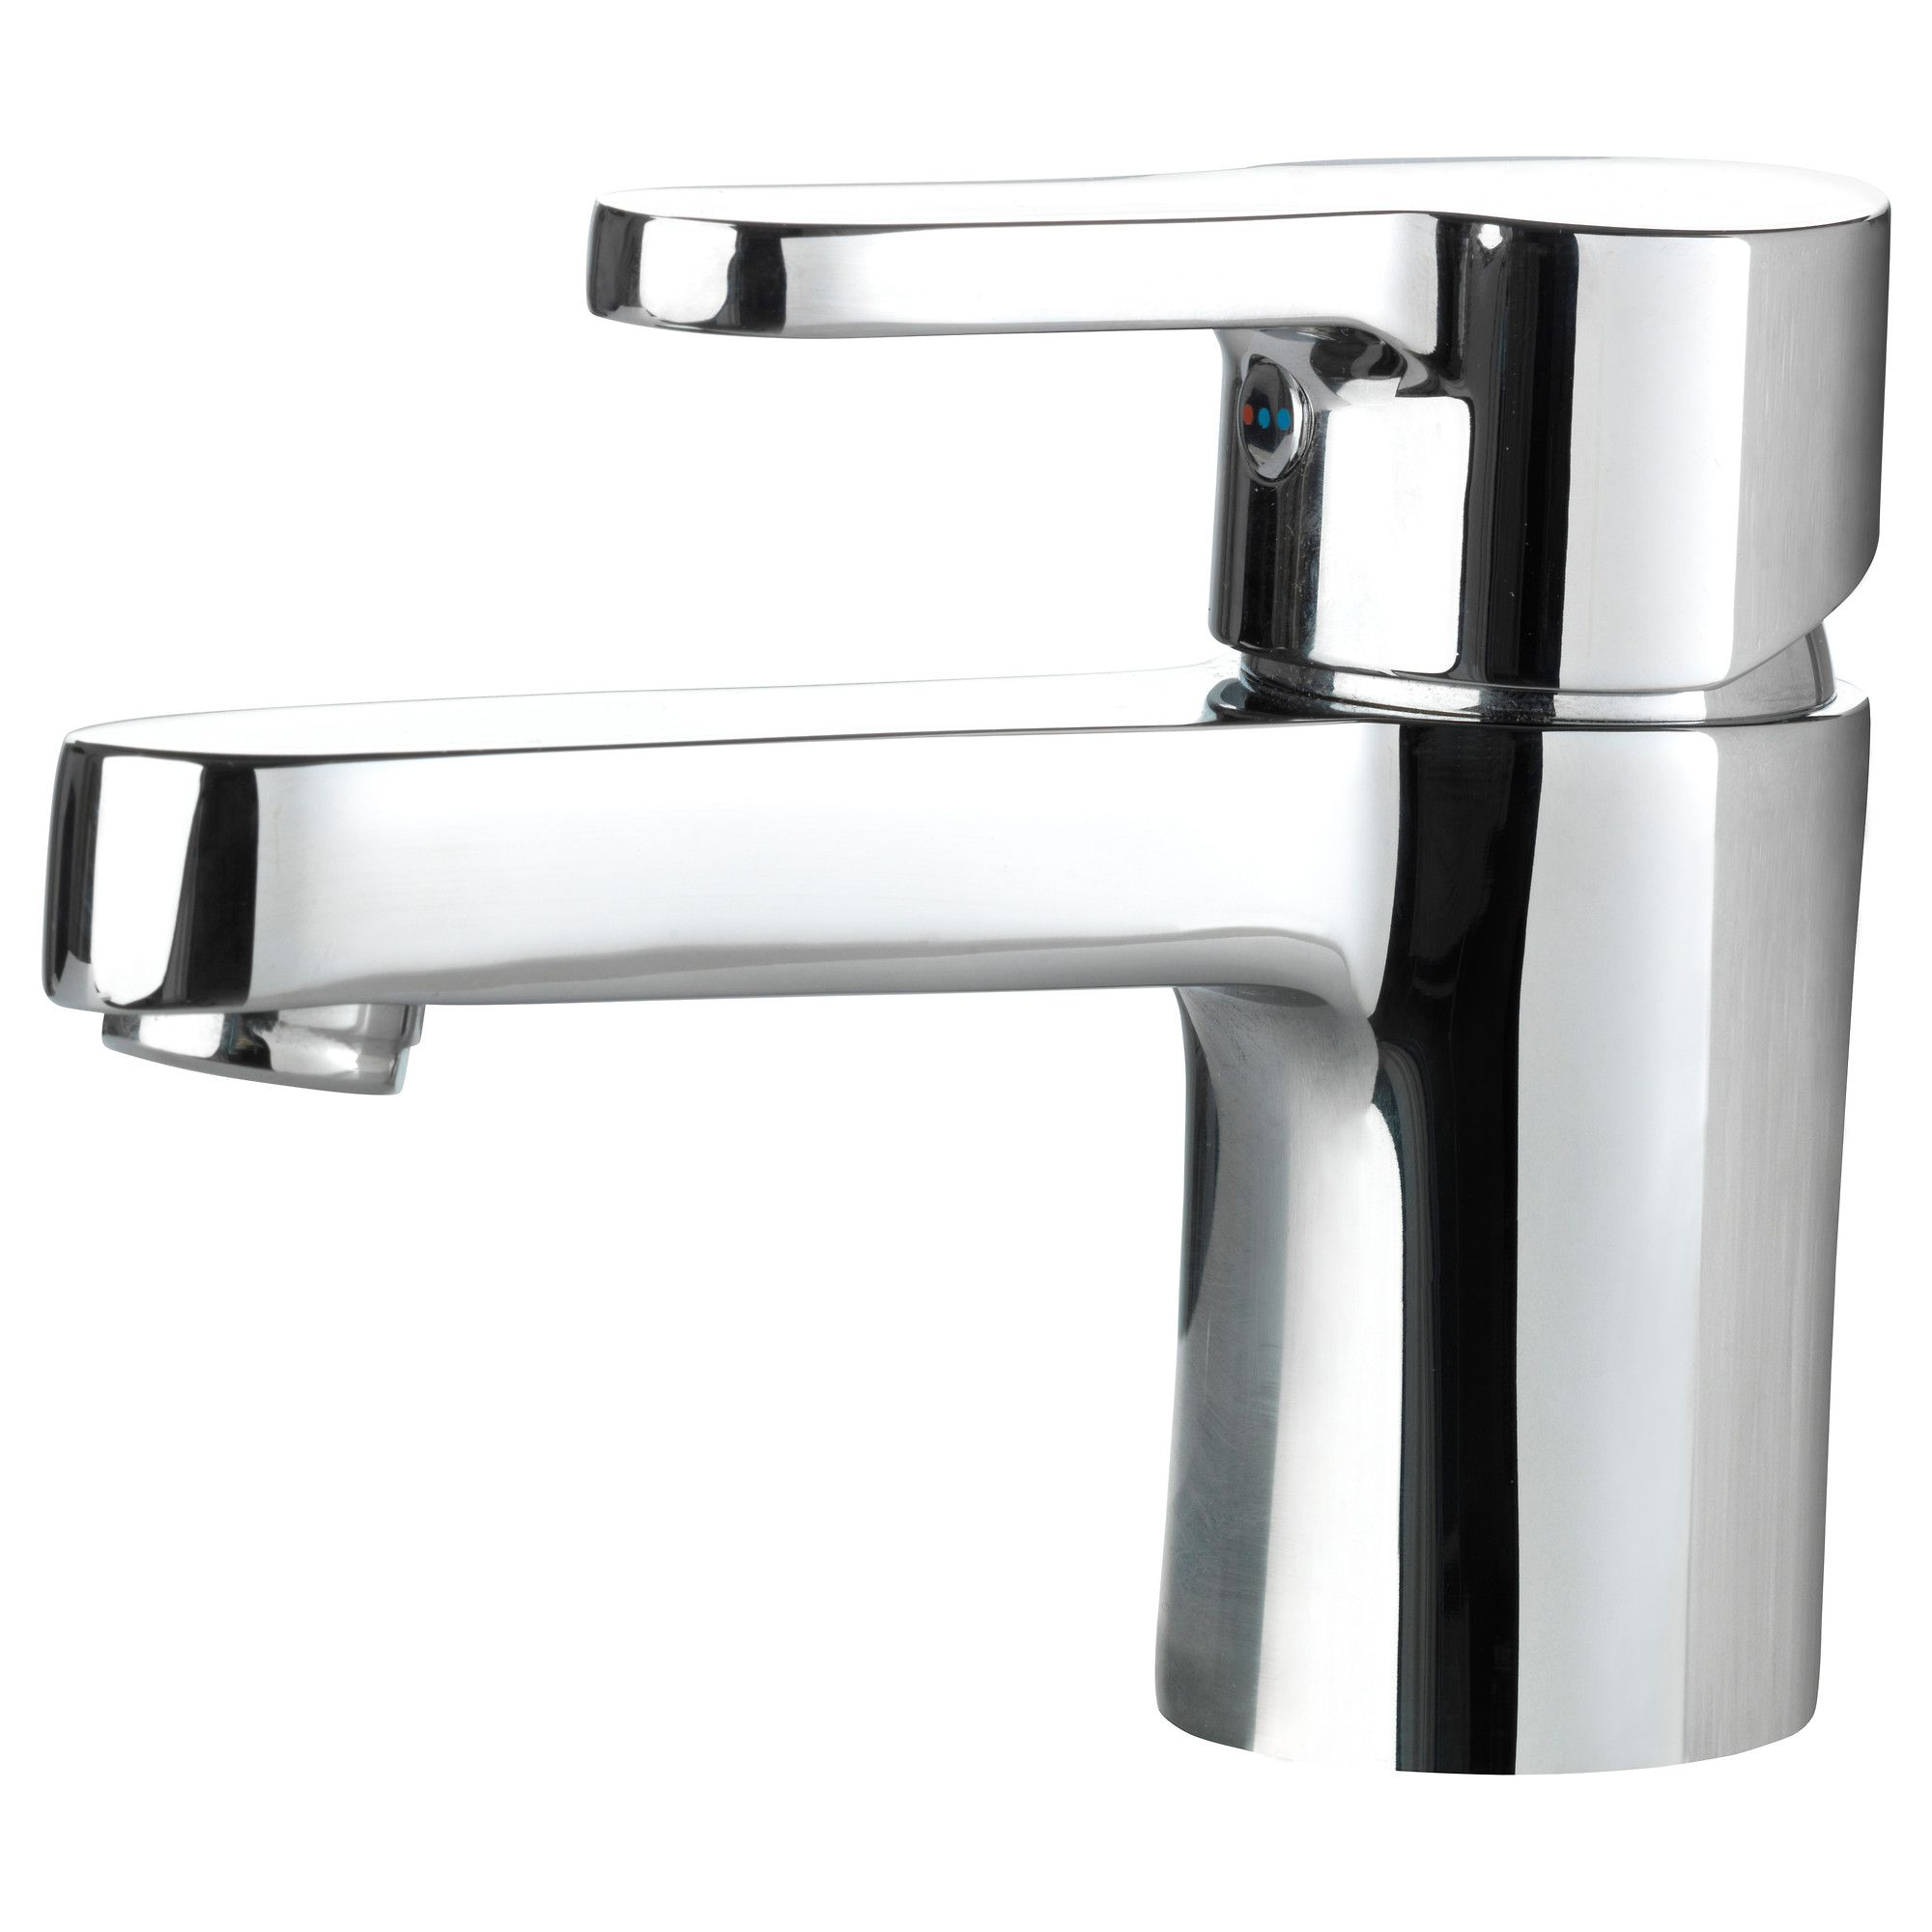 ENSEN Bath faucet with strainer - IKEA Height: 4 3/4 $50 | Albina ...